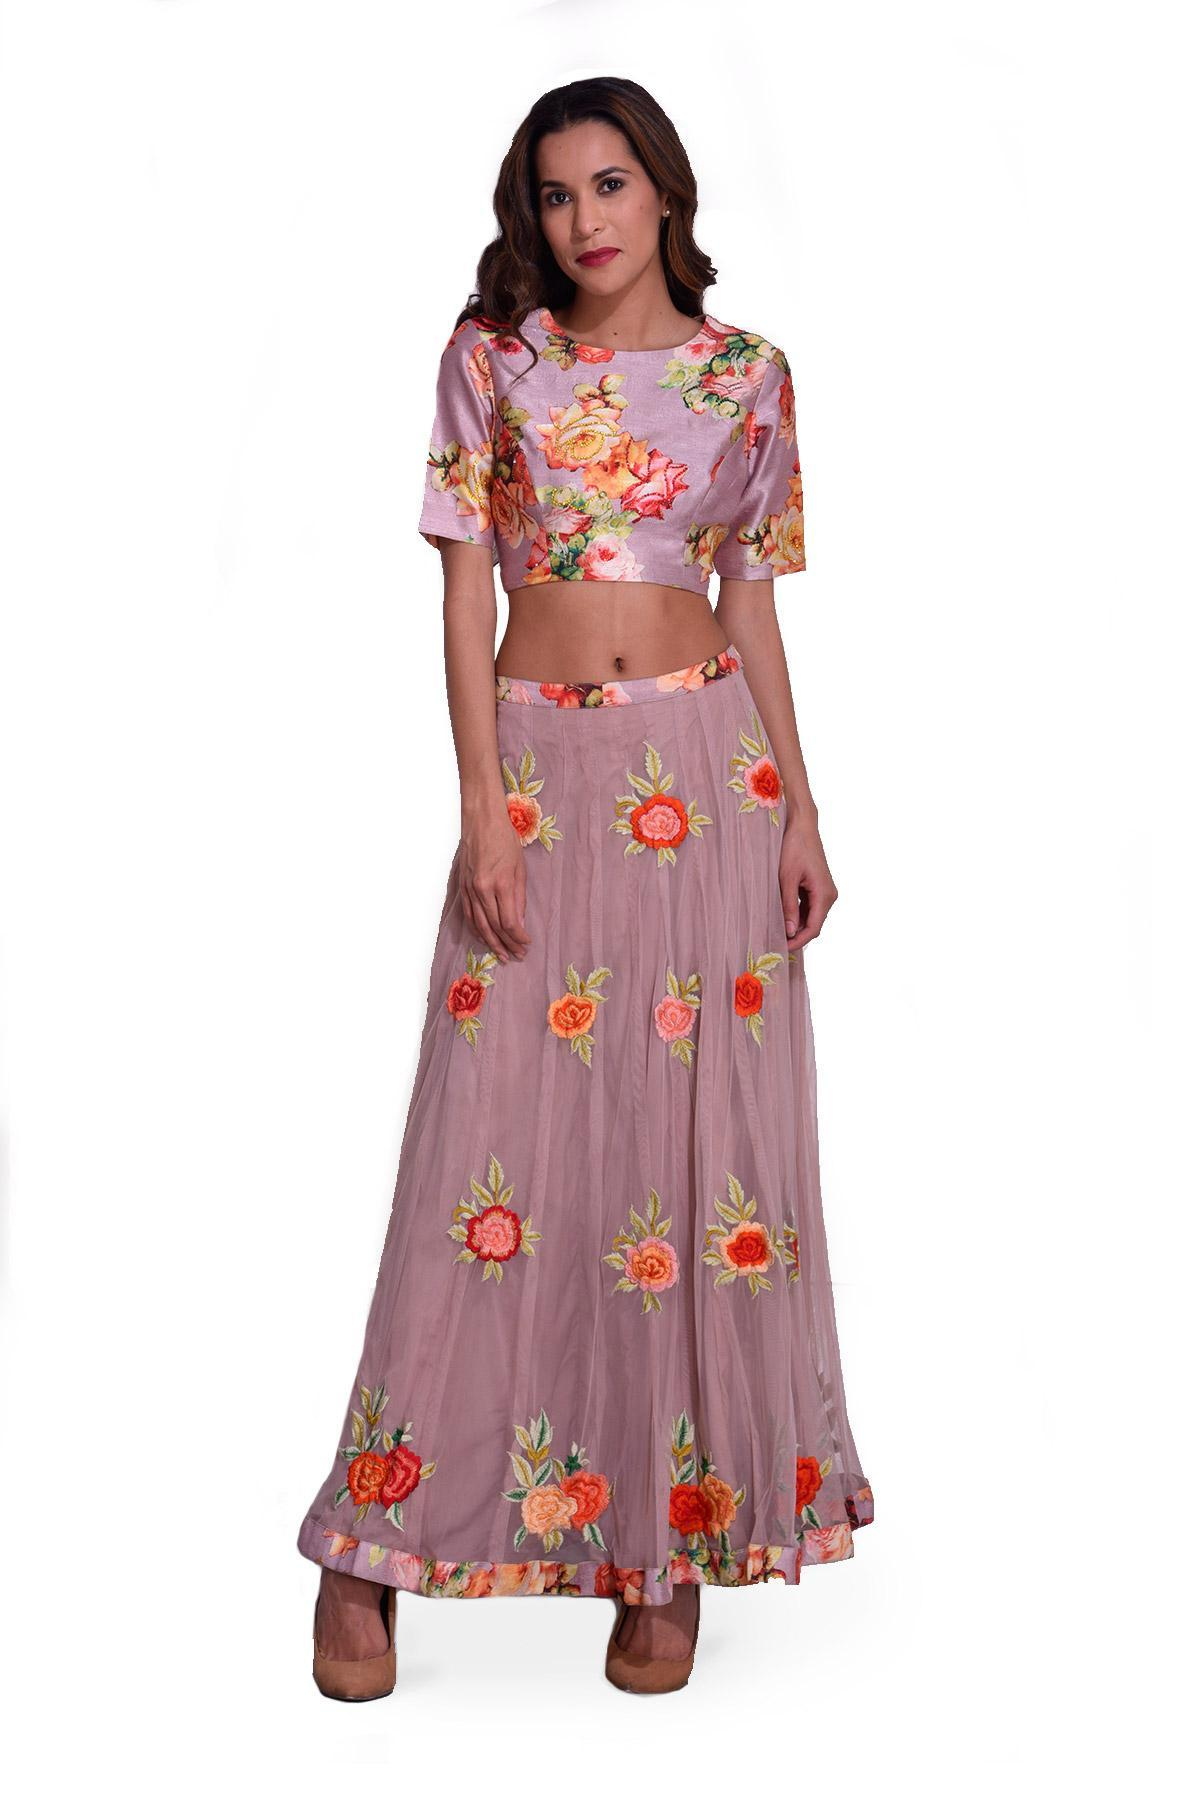 0b3c2cfb35a872 Flamingo Pink Floral Top and Skirt by Wishlist by Abha Teotia for ...